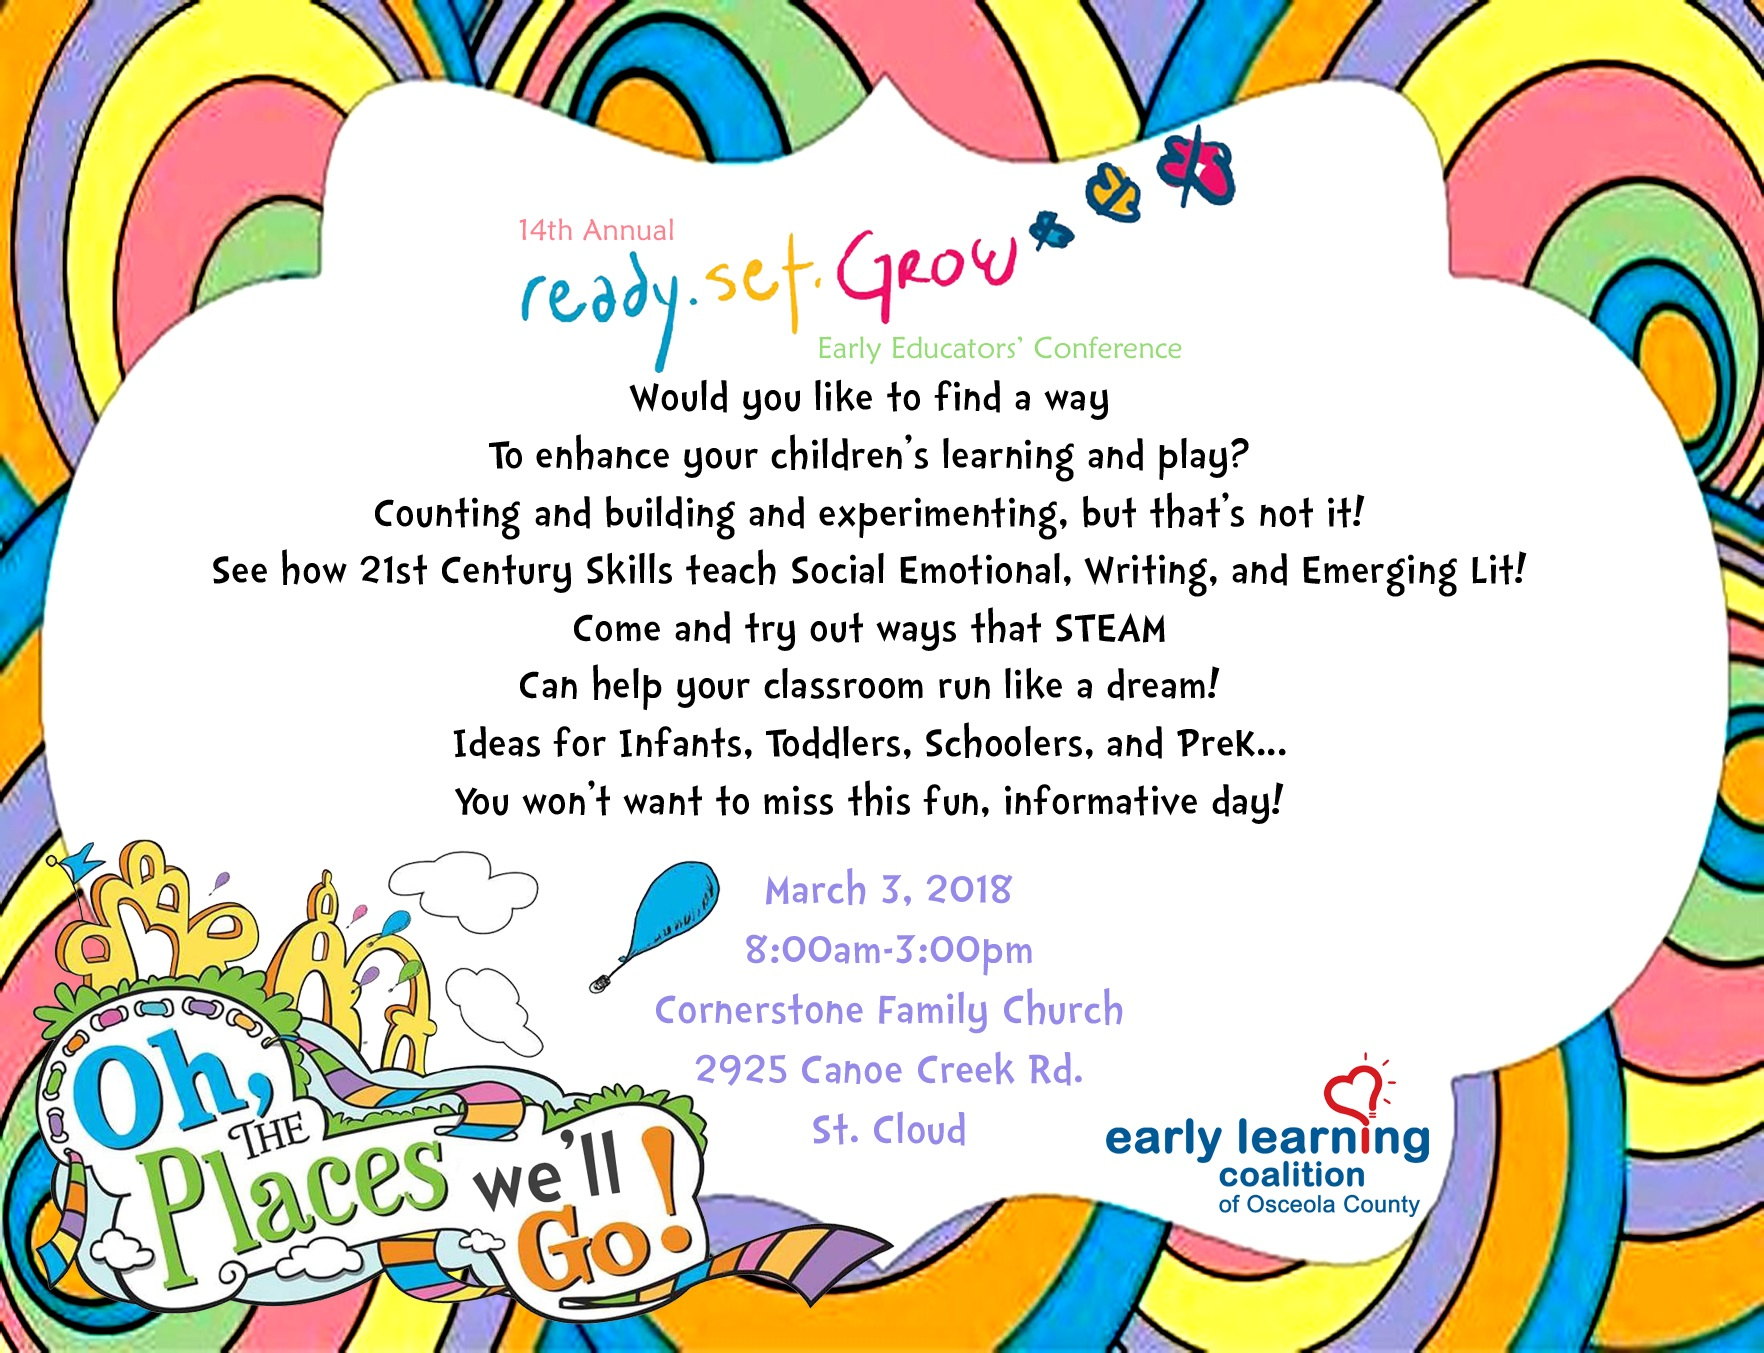 Save The Date Ready Set Grow 2018 Early Learning Coalition